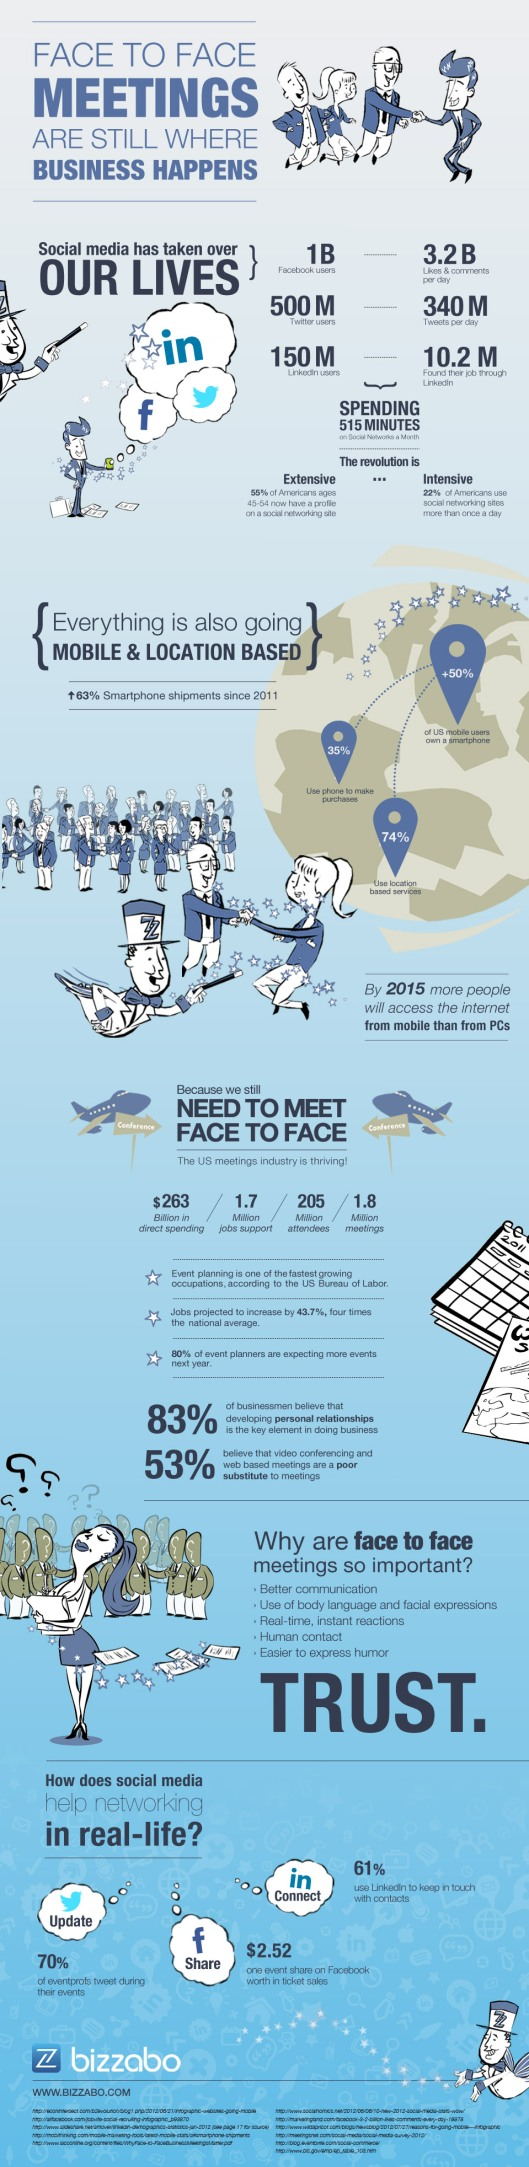 The-Importance-of-Face-To-Face-Meetings_viaBizzabo